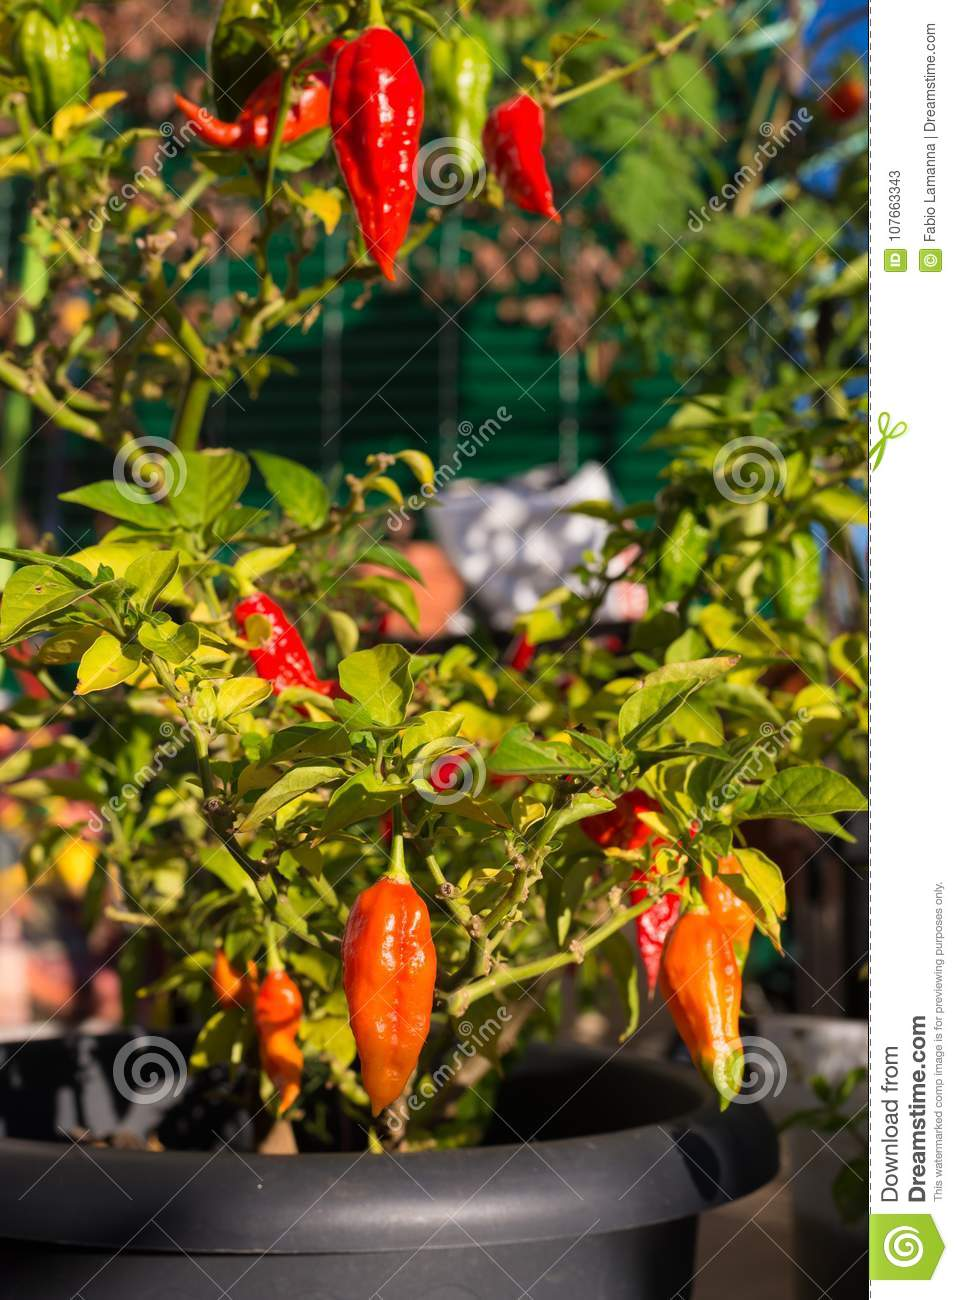 Bhut Jolokia Chili Pepper One Of The Hottest Pepper In The World